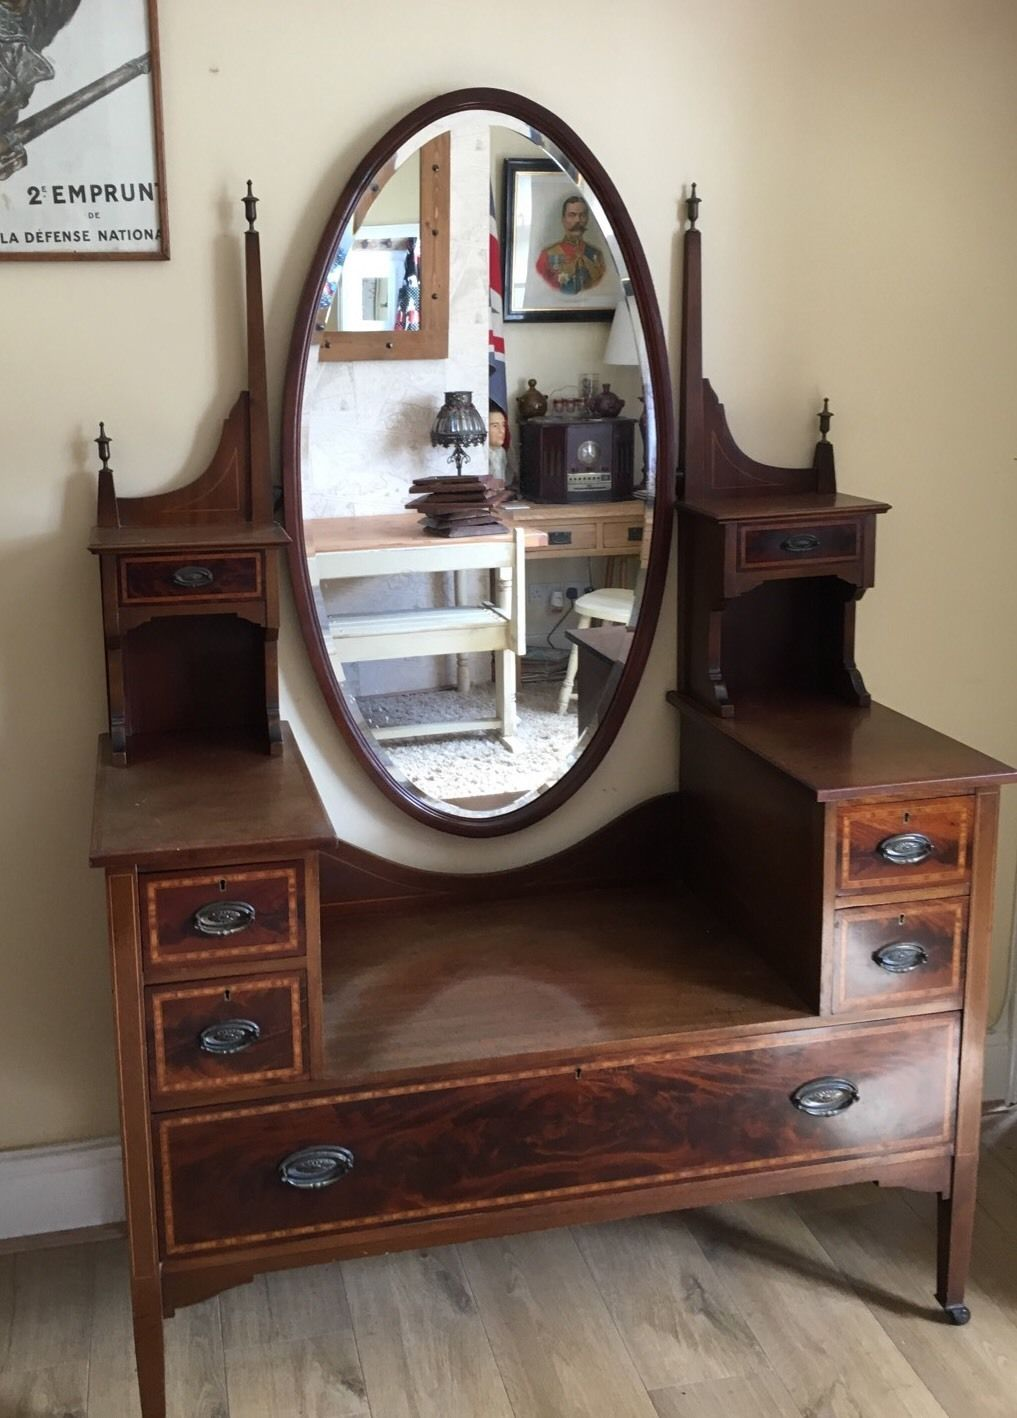 edwardian-dressing-table-with-large-mirror-bedroom-vintage